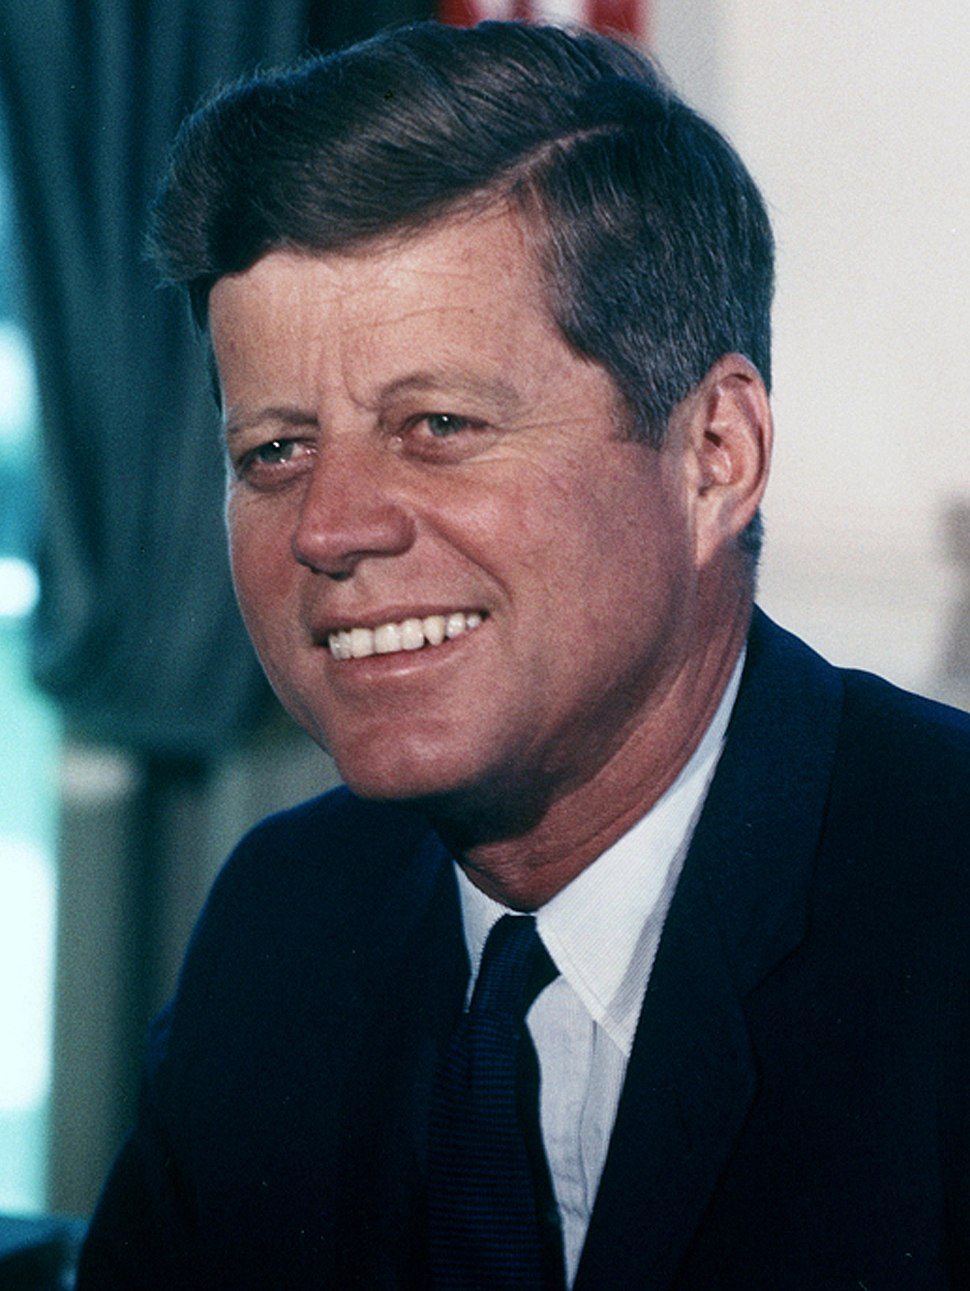 John F. Kennedy, White House color photo portrait (cropped 3x4) A